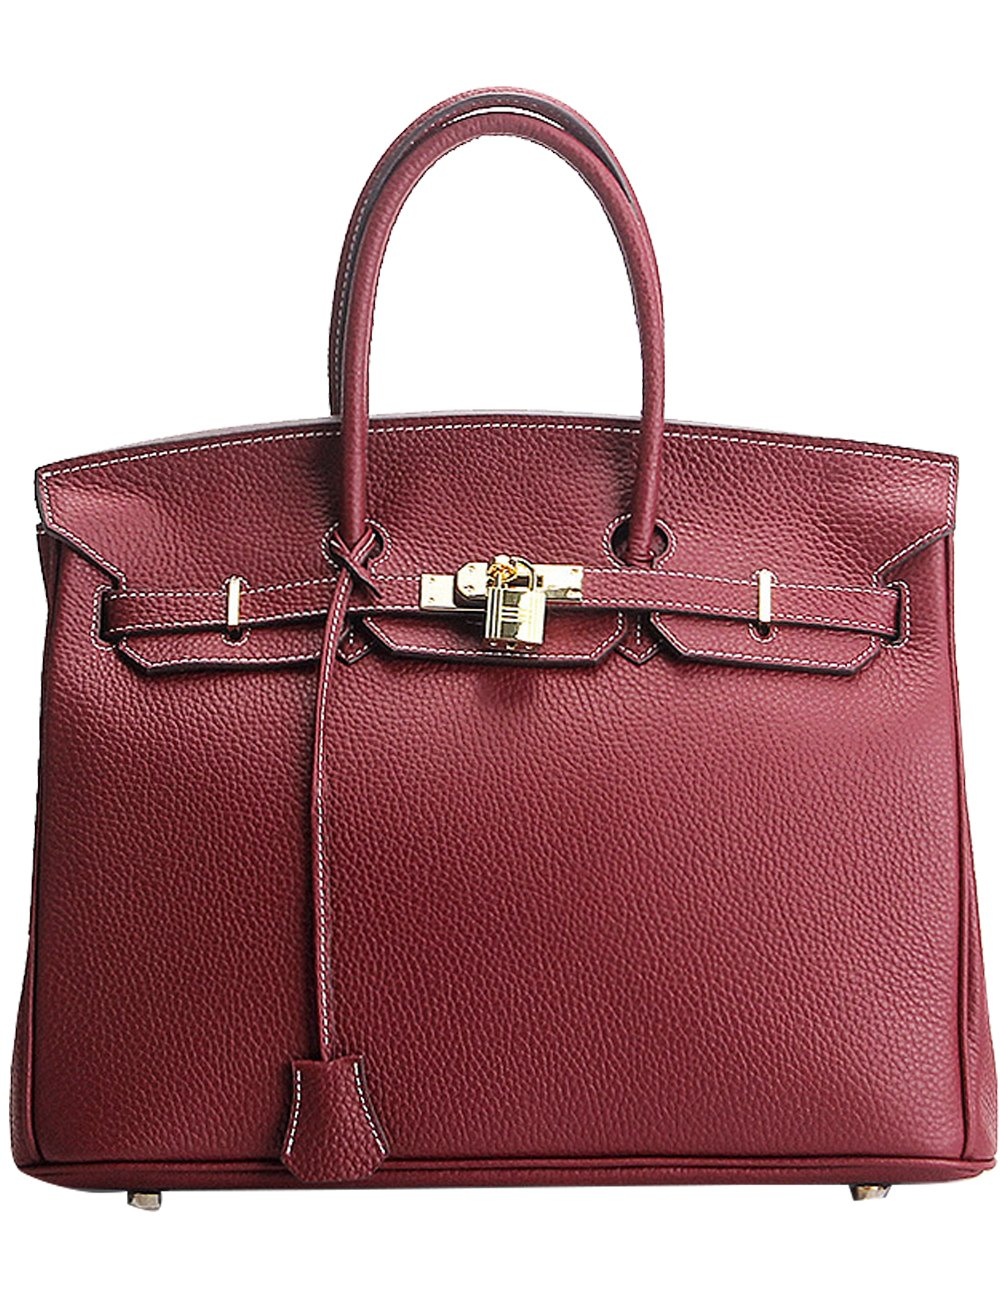 Menschwear Womens Genuine Leather Top Handle Satchel Bag 25cm Wine-Red